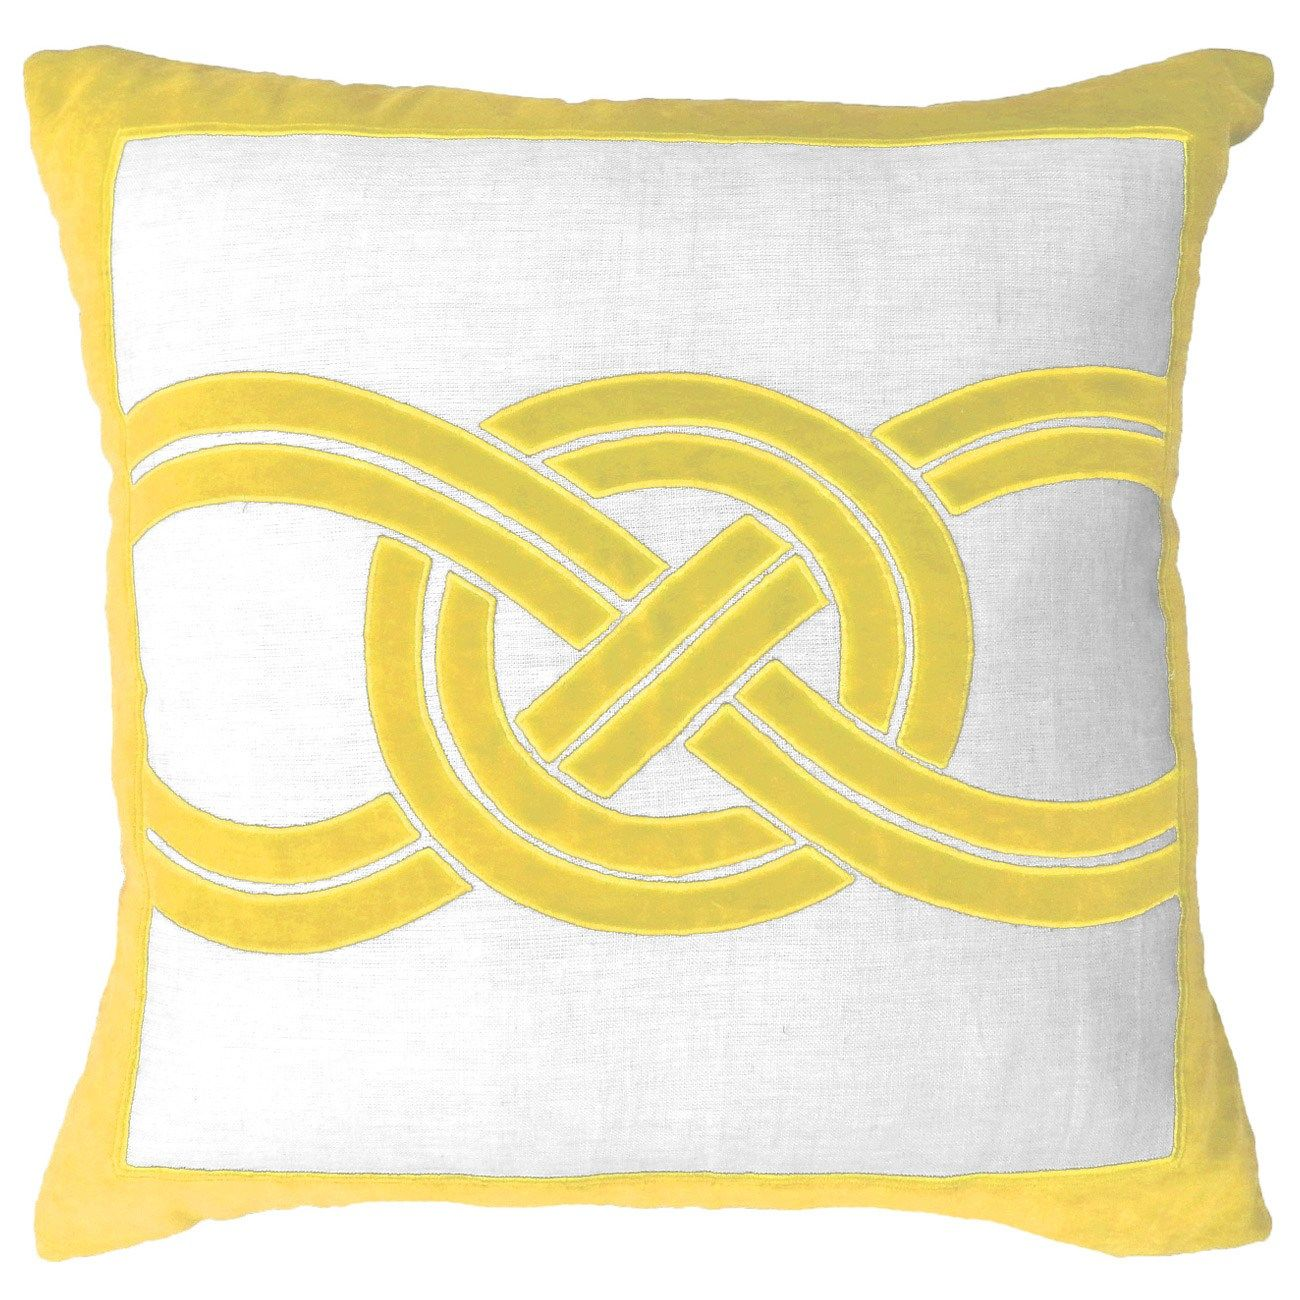 Knot yellow lounge throw pillow laylagrayce pillows